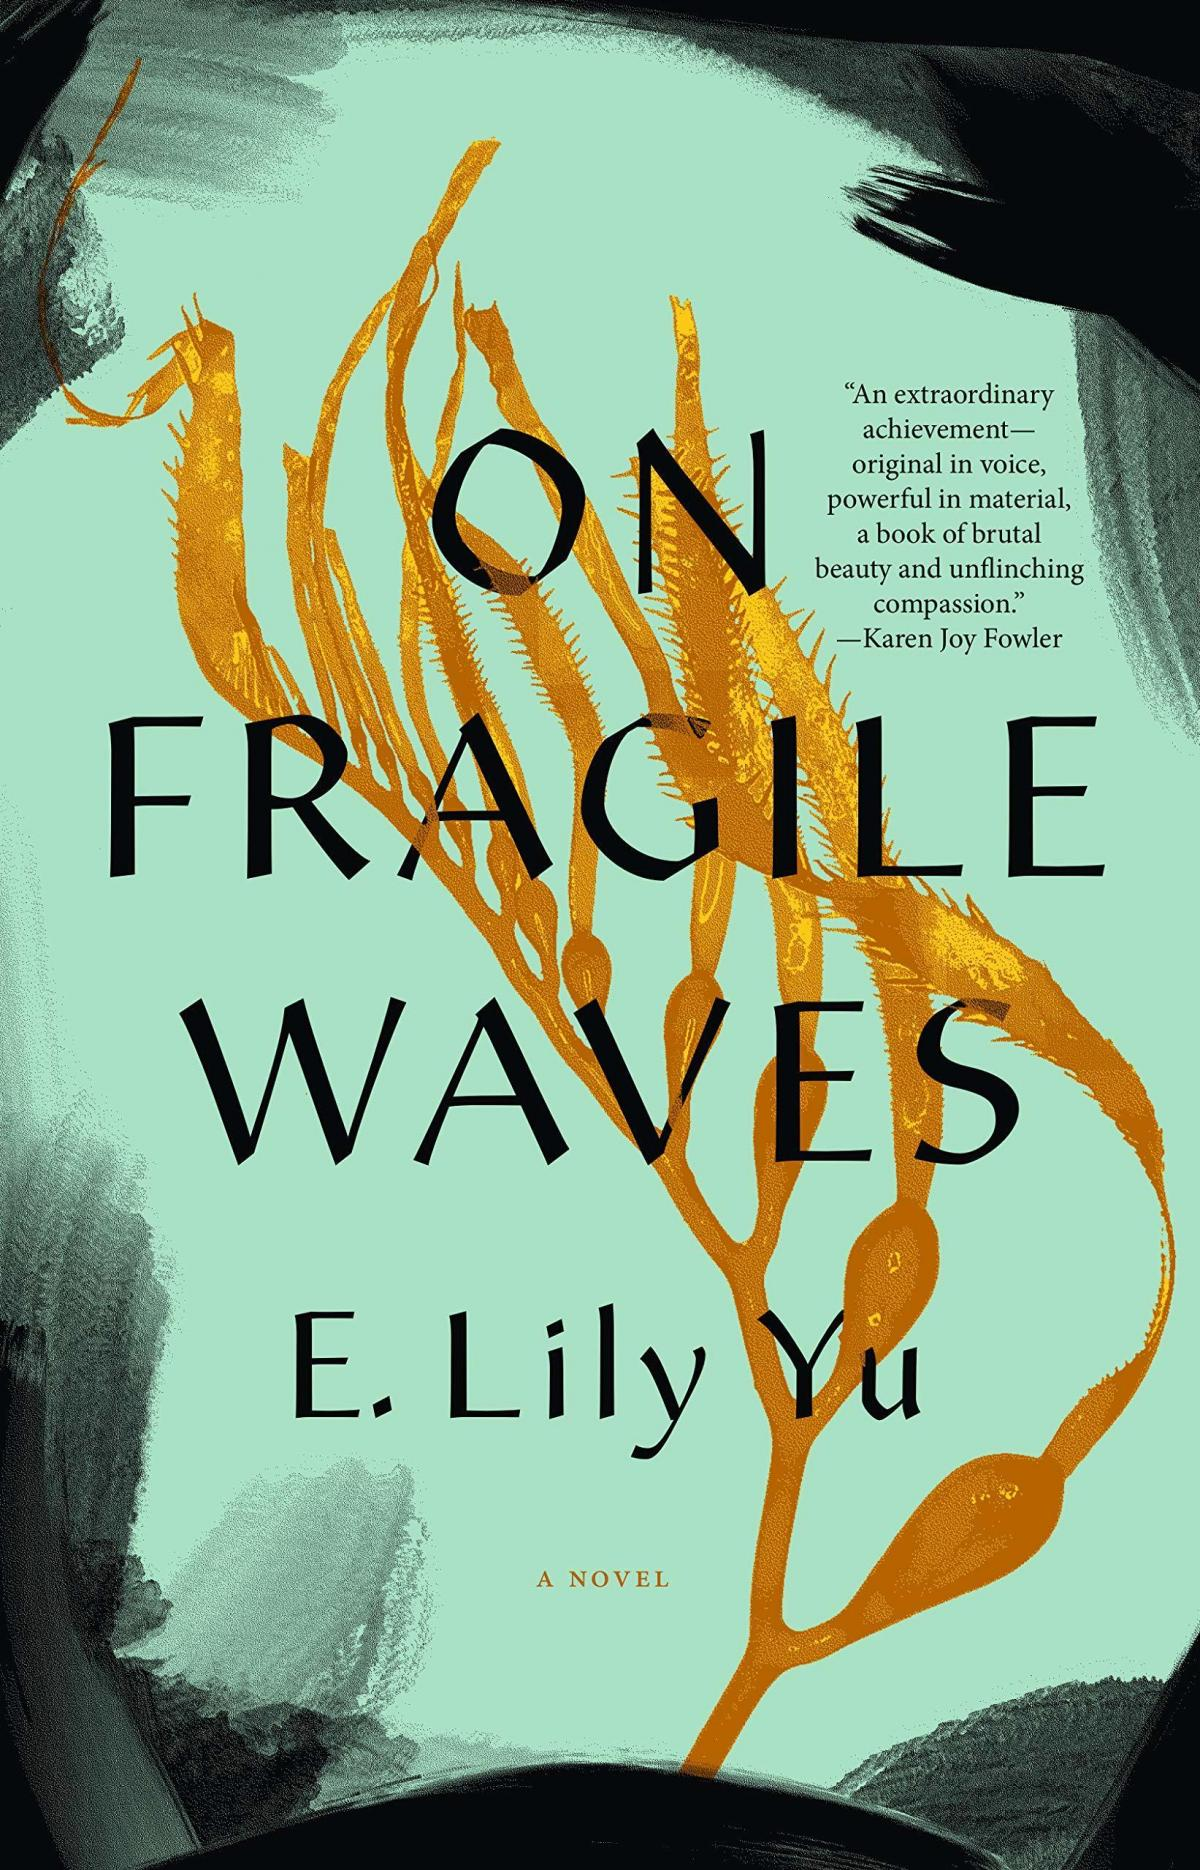 On Fragile Waves, by E. Lily Yu